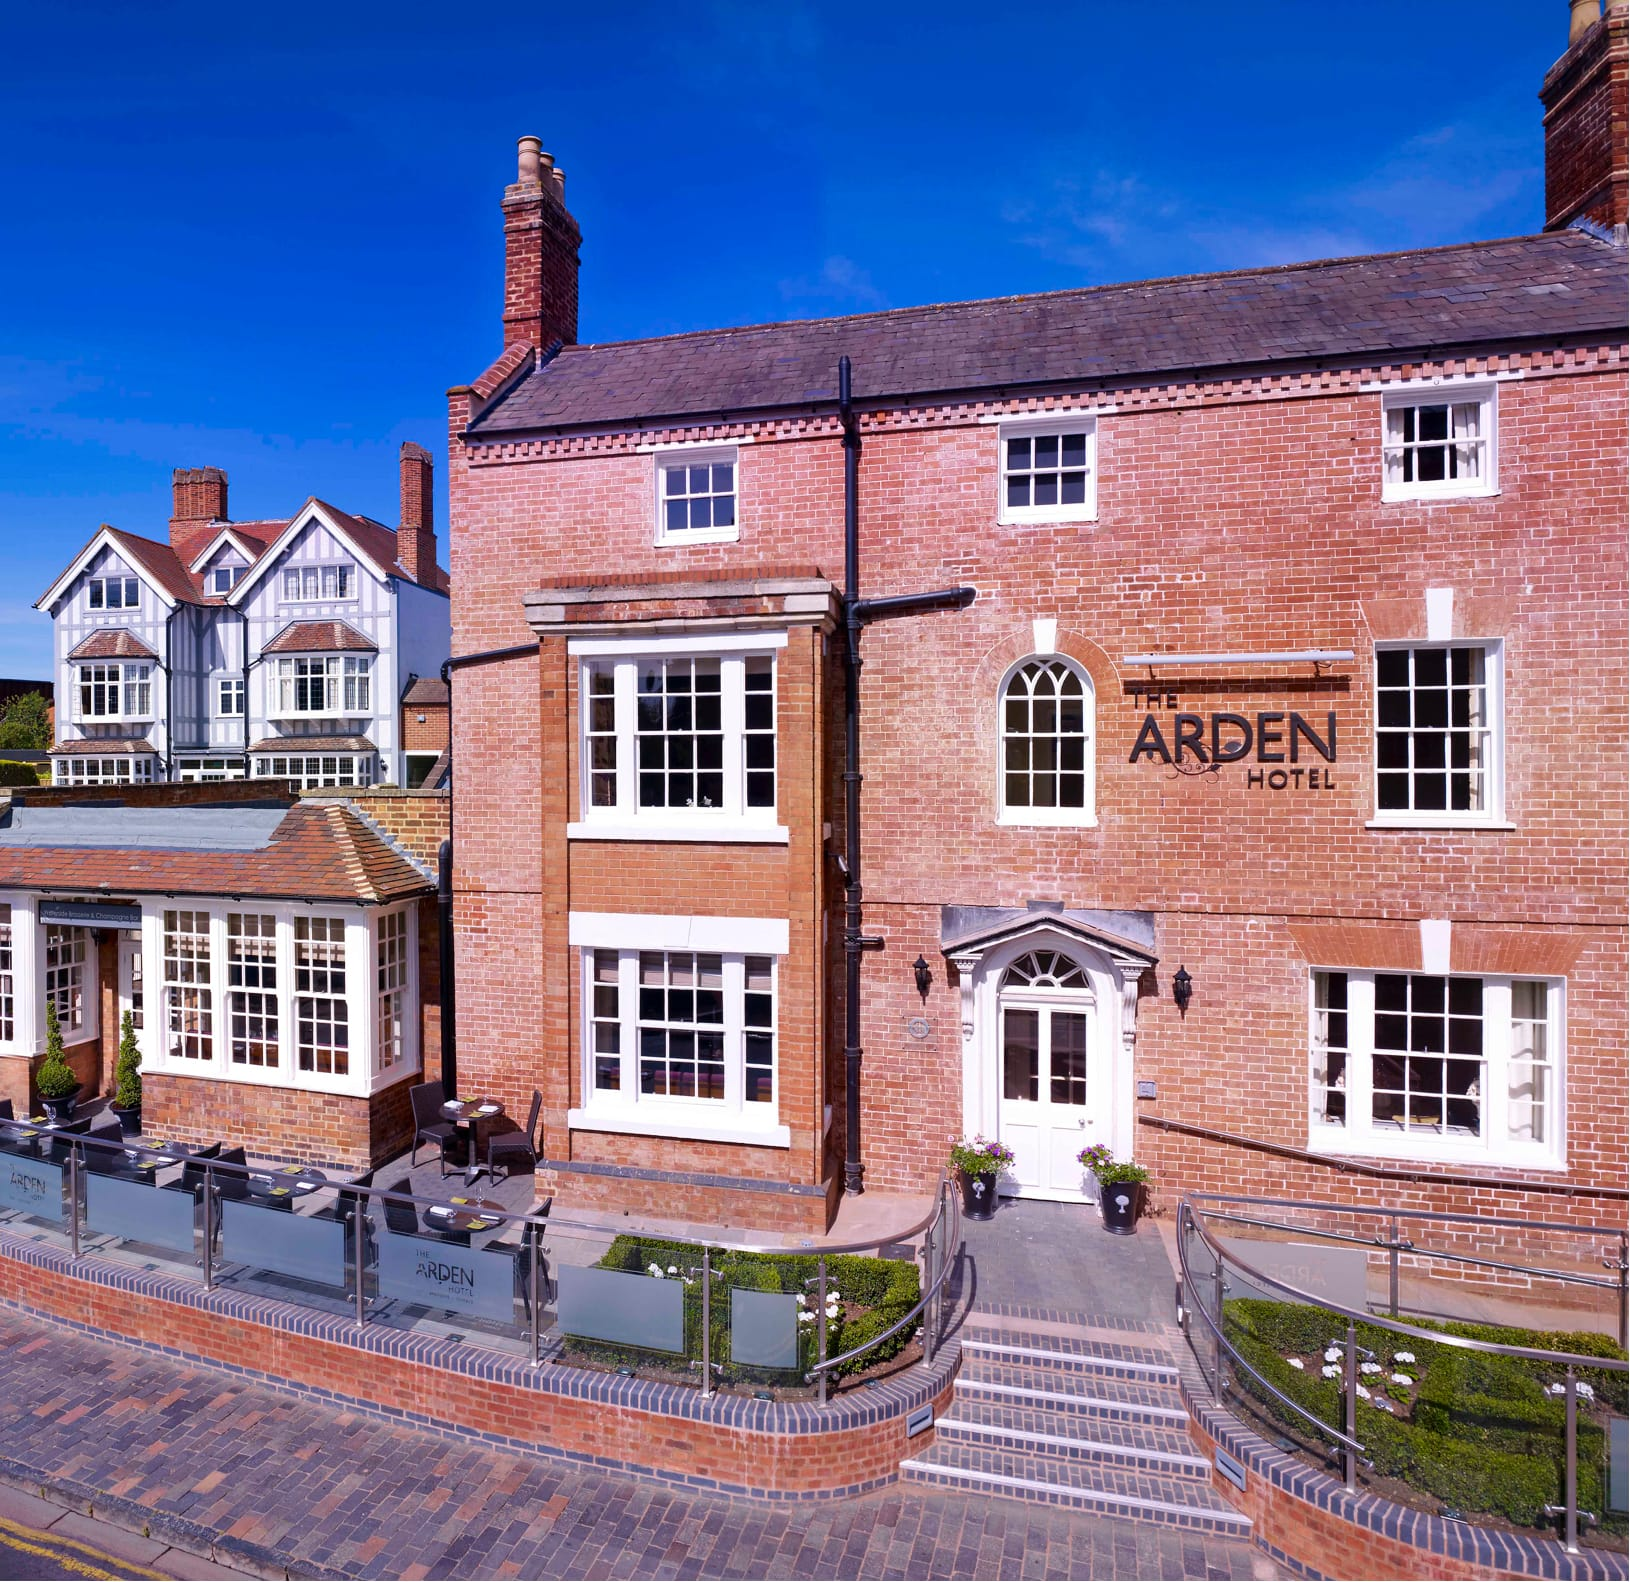 Choose to visit the Arden Hotel in Stratford-upon-Avon as part of the Eden Hotel Collection.